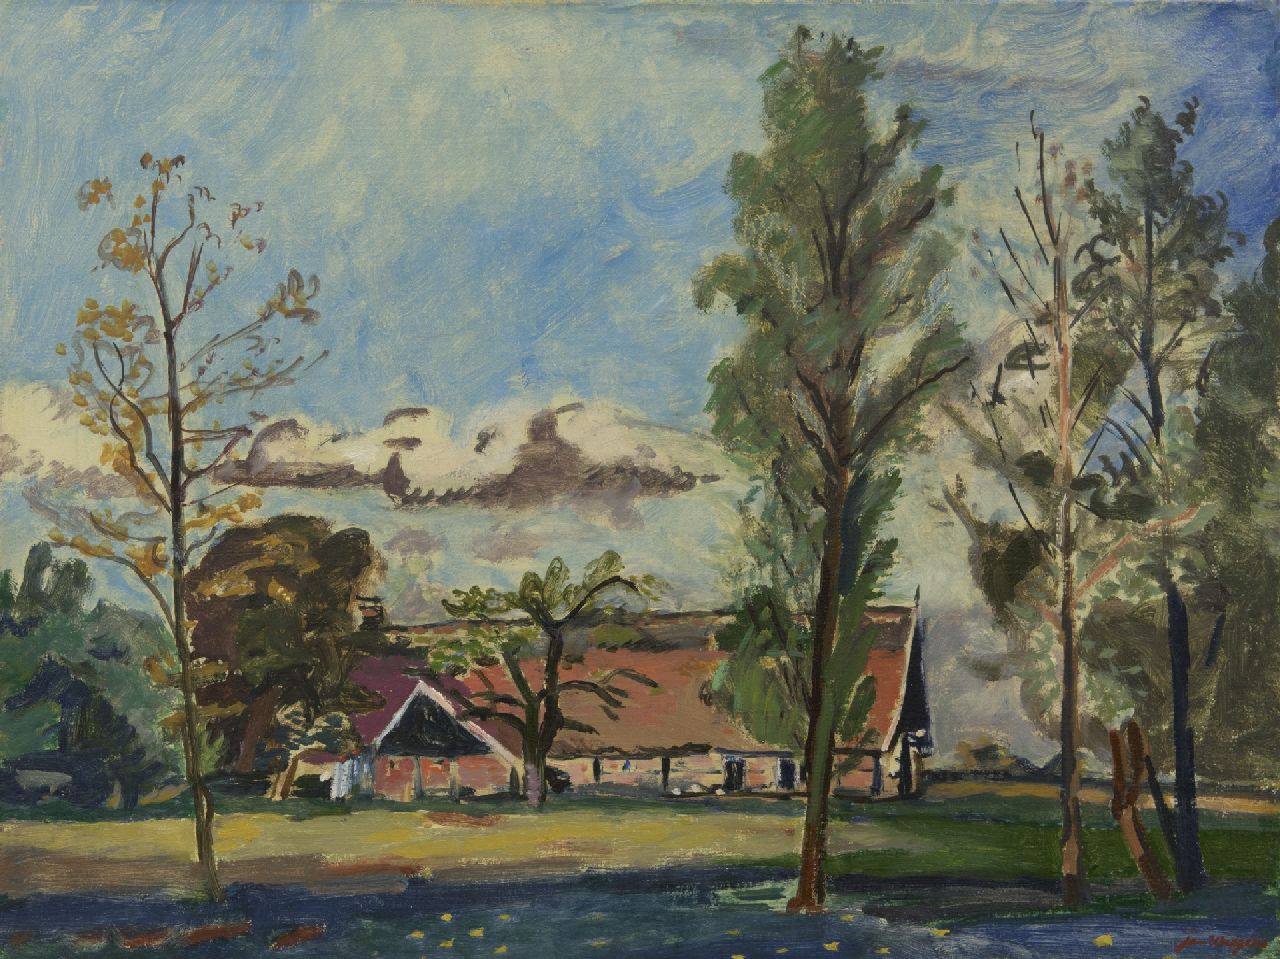 Wiegers J.  | Jan Wiegers | Paintings offered for sale | A farm in Saasveld, Twente, oil on canvas 46.6 x 61.2 cm, signed l.r. and dated '40